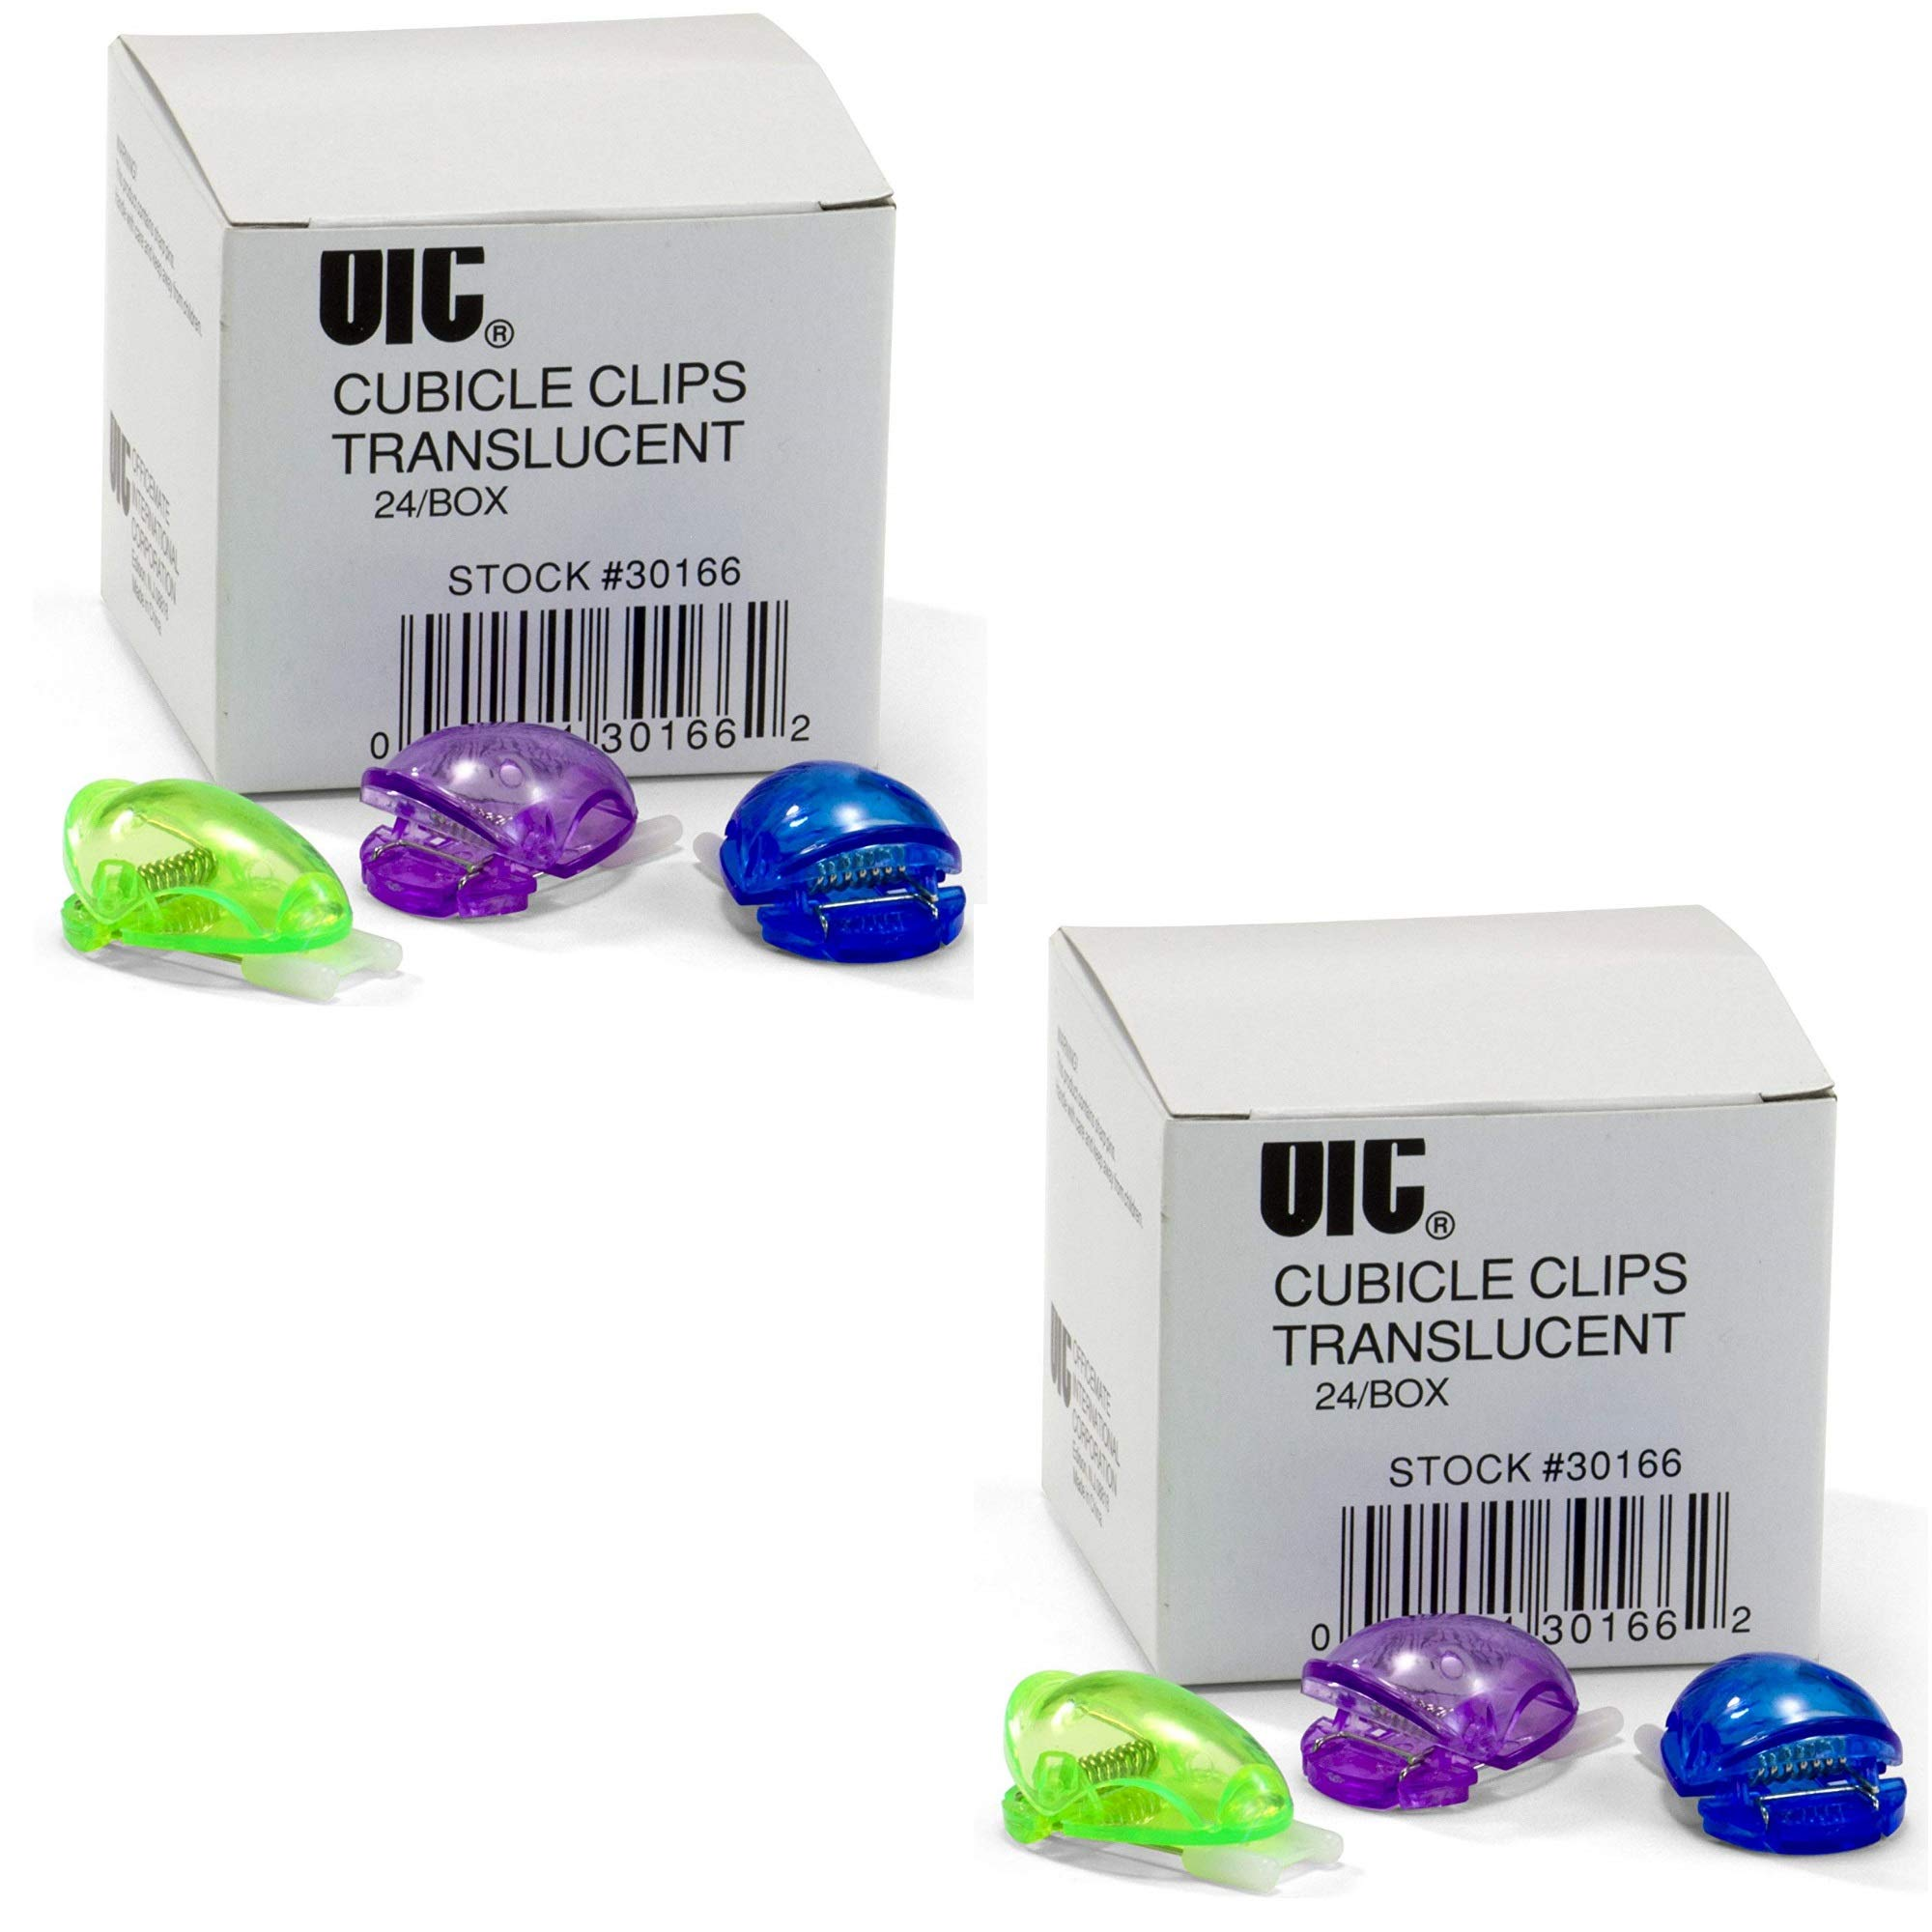 Officemate Standard Cubicle Clips, Assorted Translucent Colors, 24/Box (30166), 2 Pack